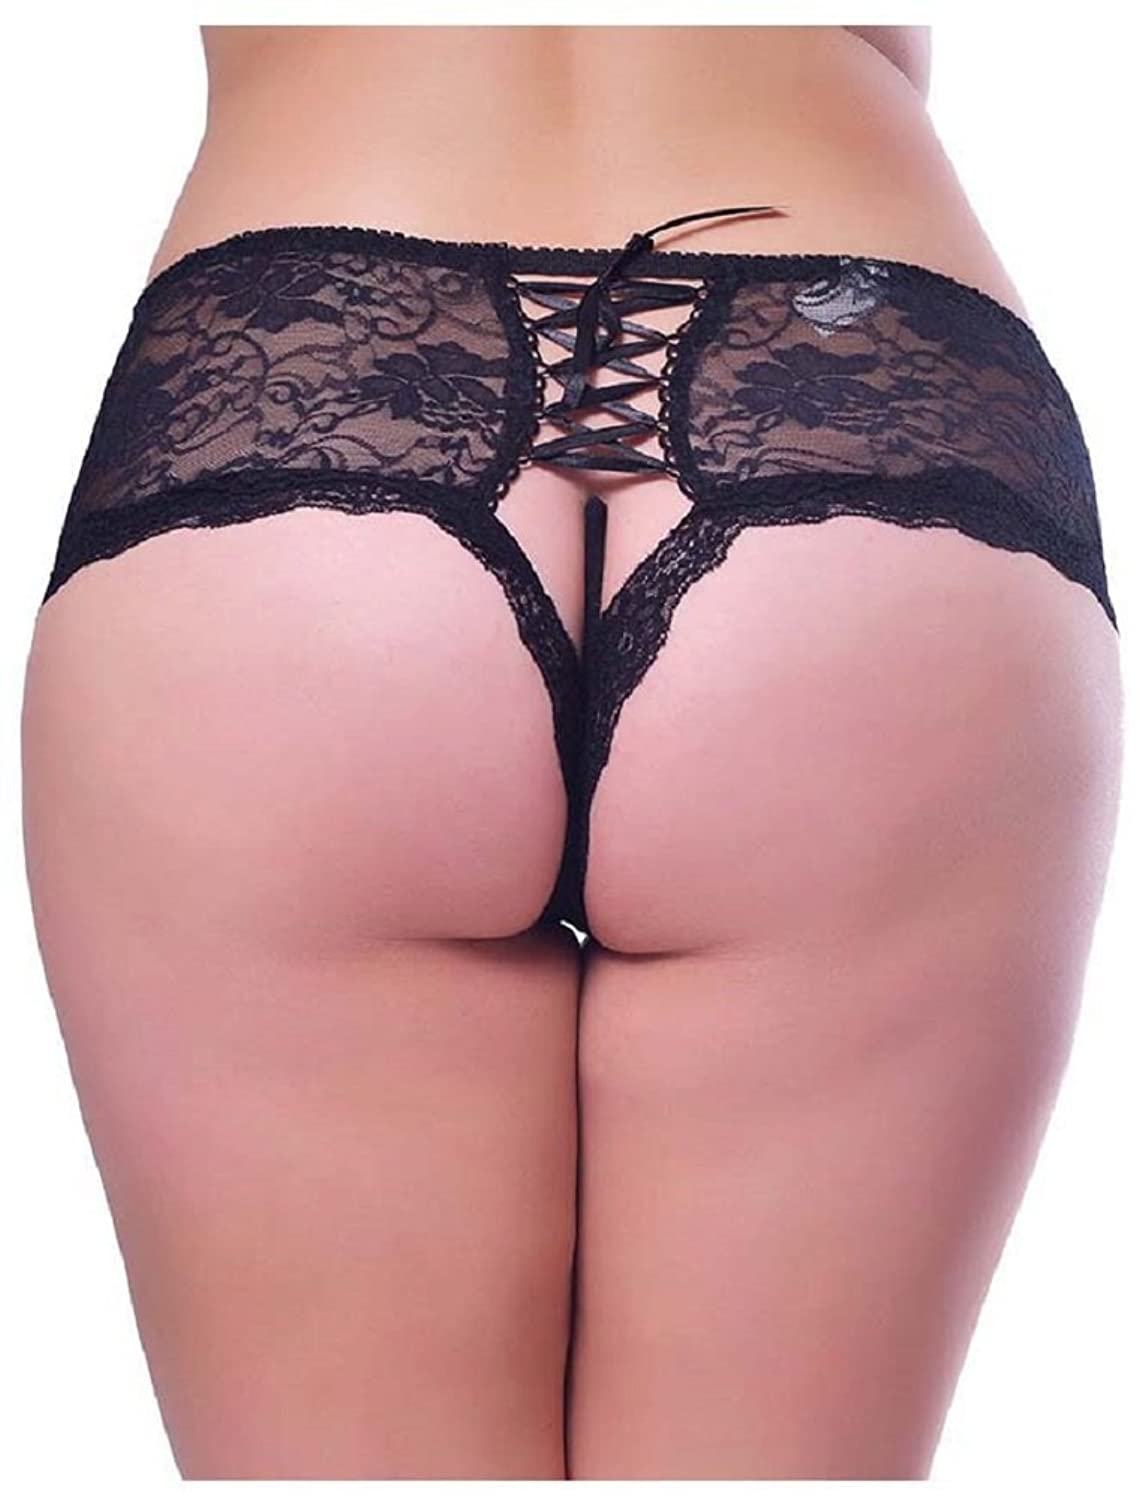 Black Panties Lace Boyleg Open Crotch Plus Briefs Undies Underwear